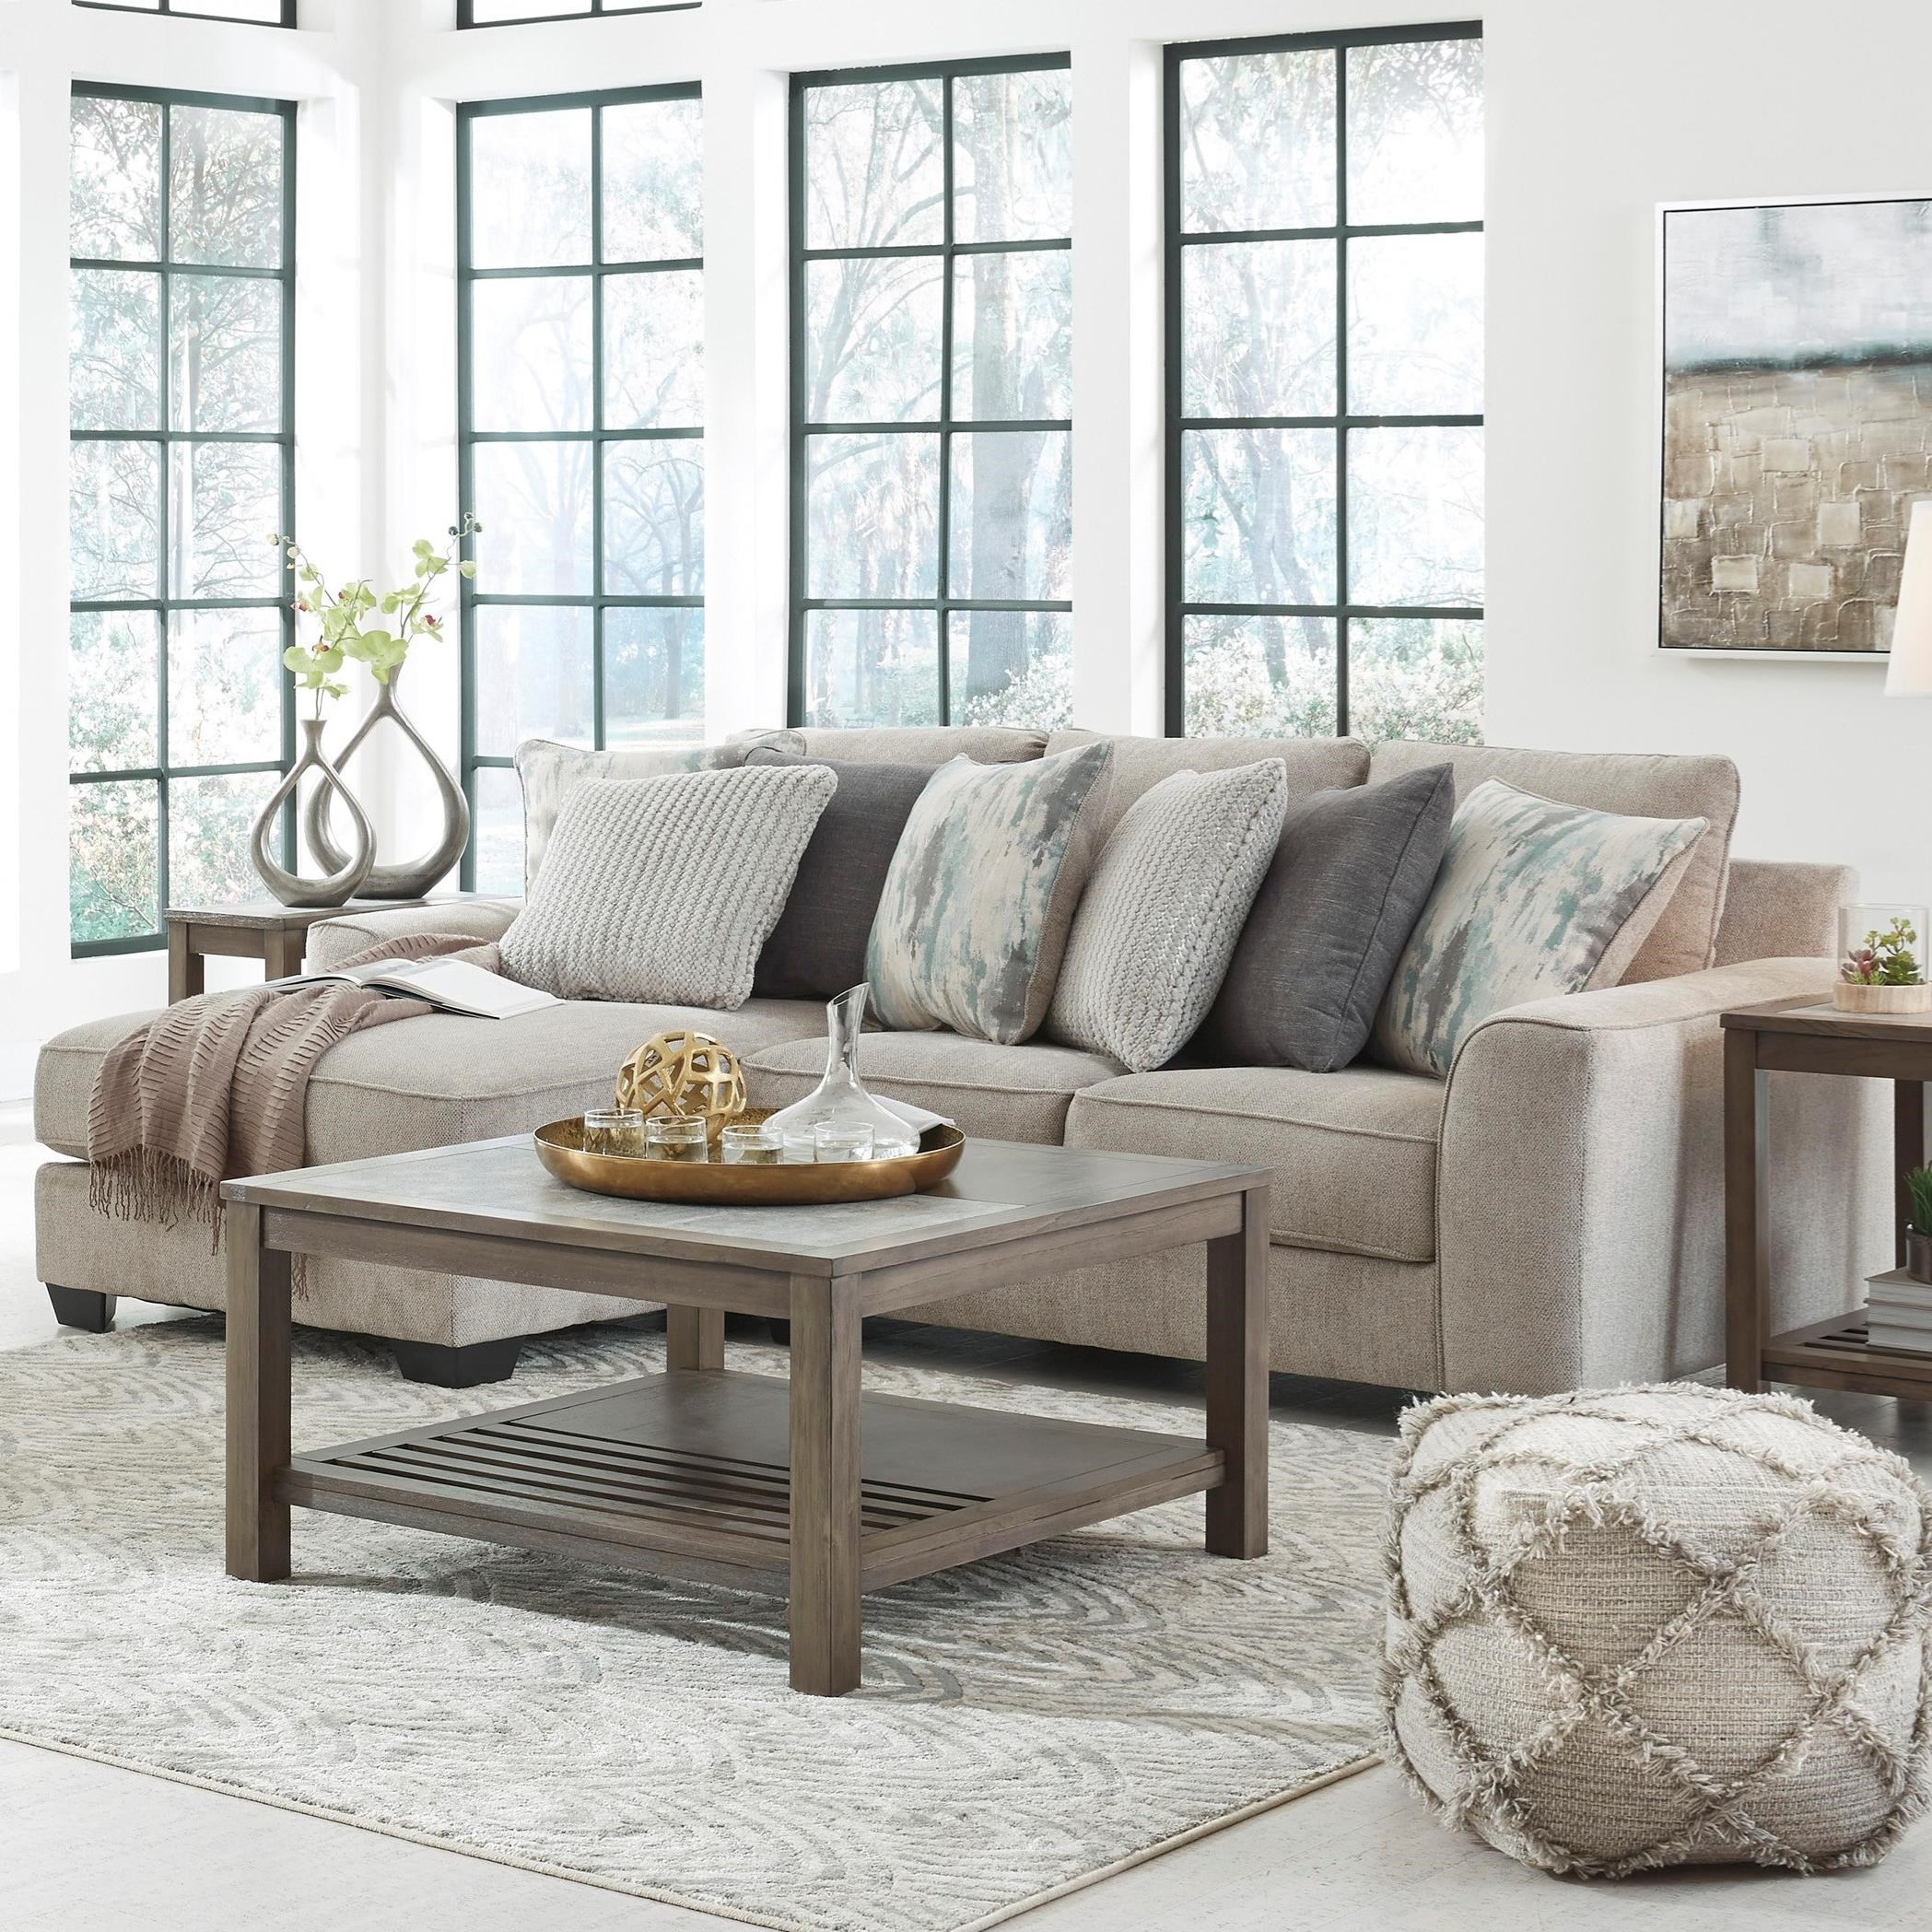 Ardsley 2-Piece Sectional with Left Chaise by Benchcraft at Beck's Furniture